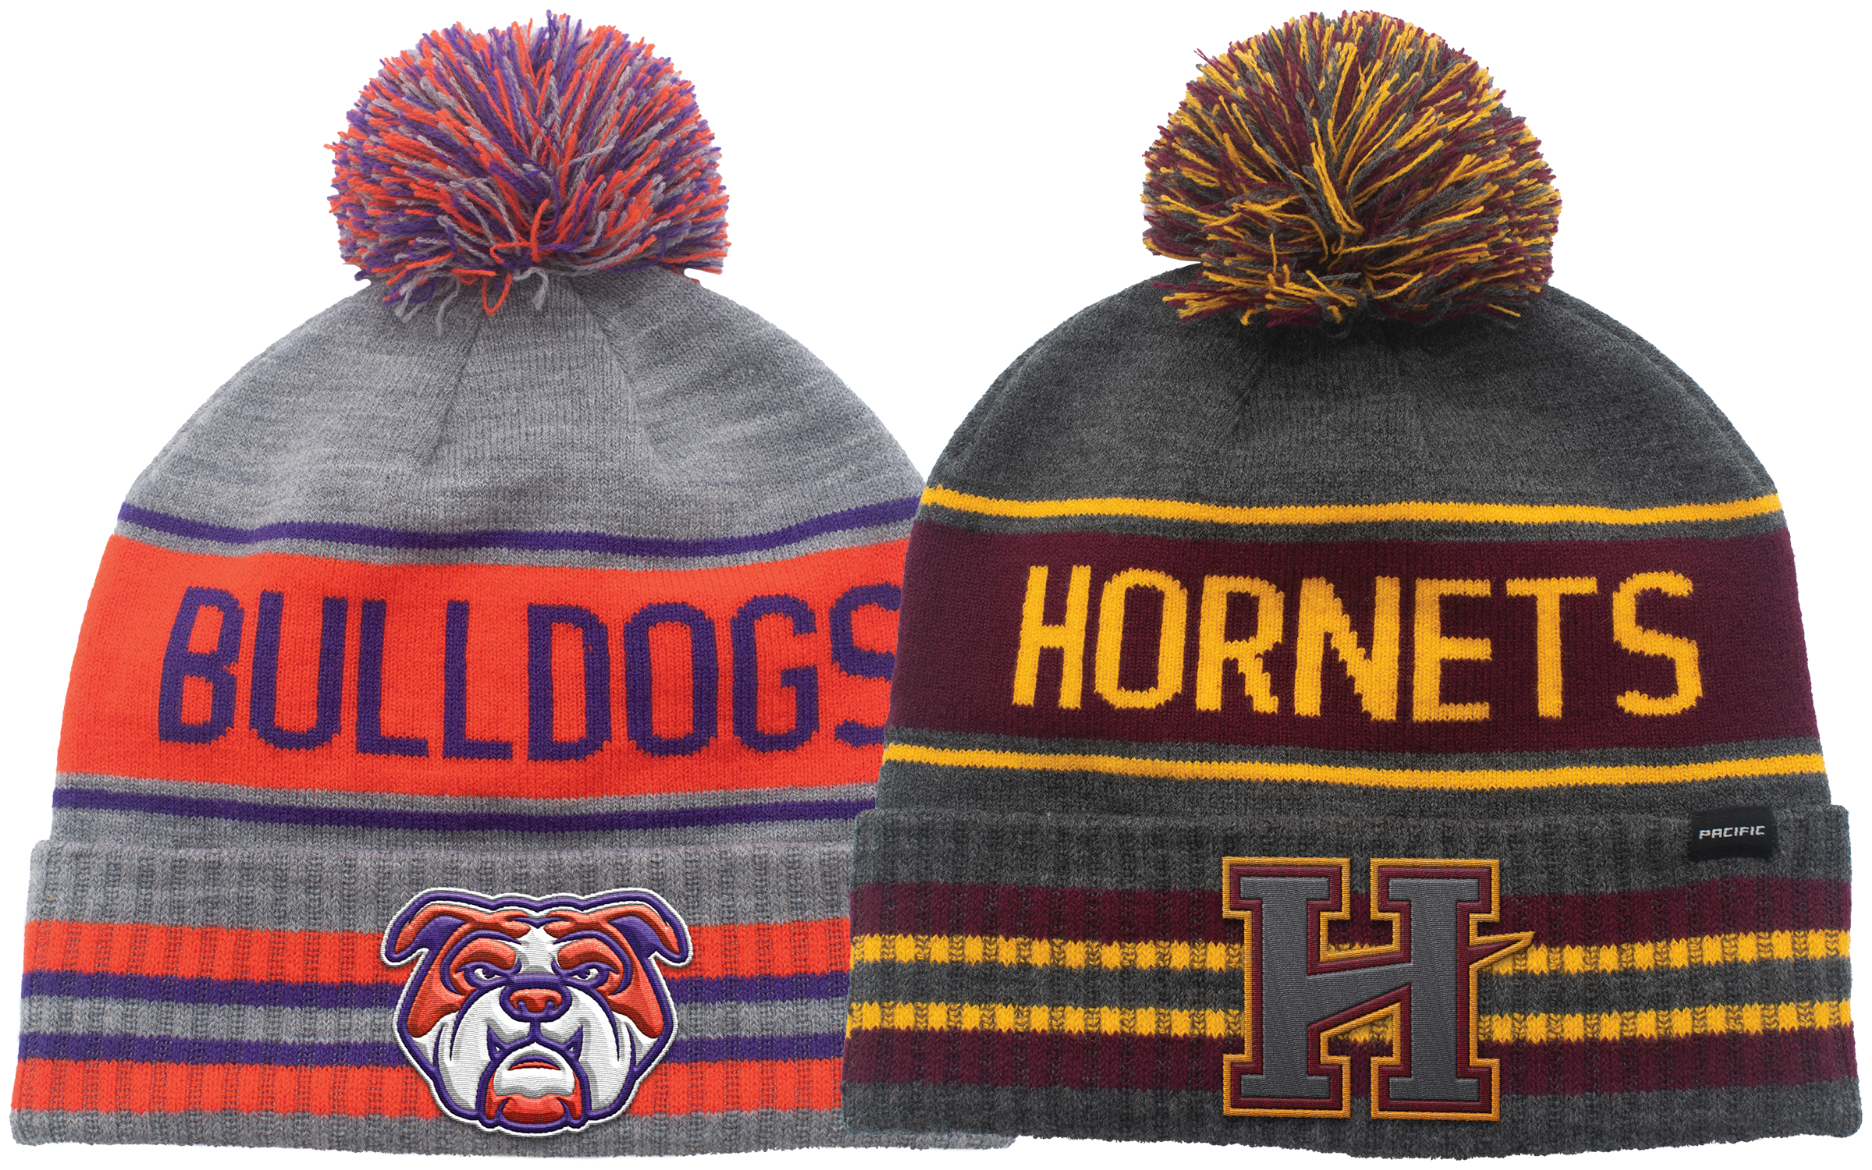 Flat or 3D embroidery options for custom beanies